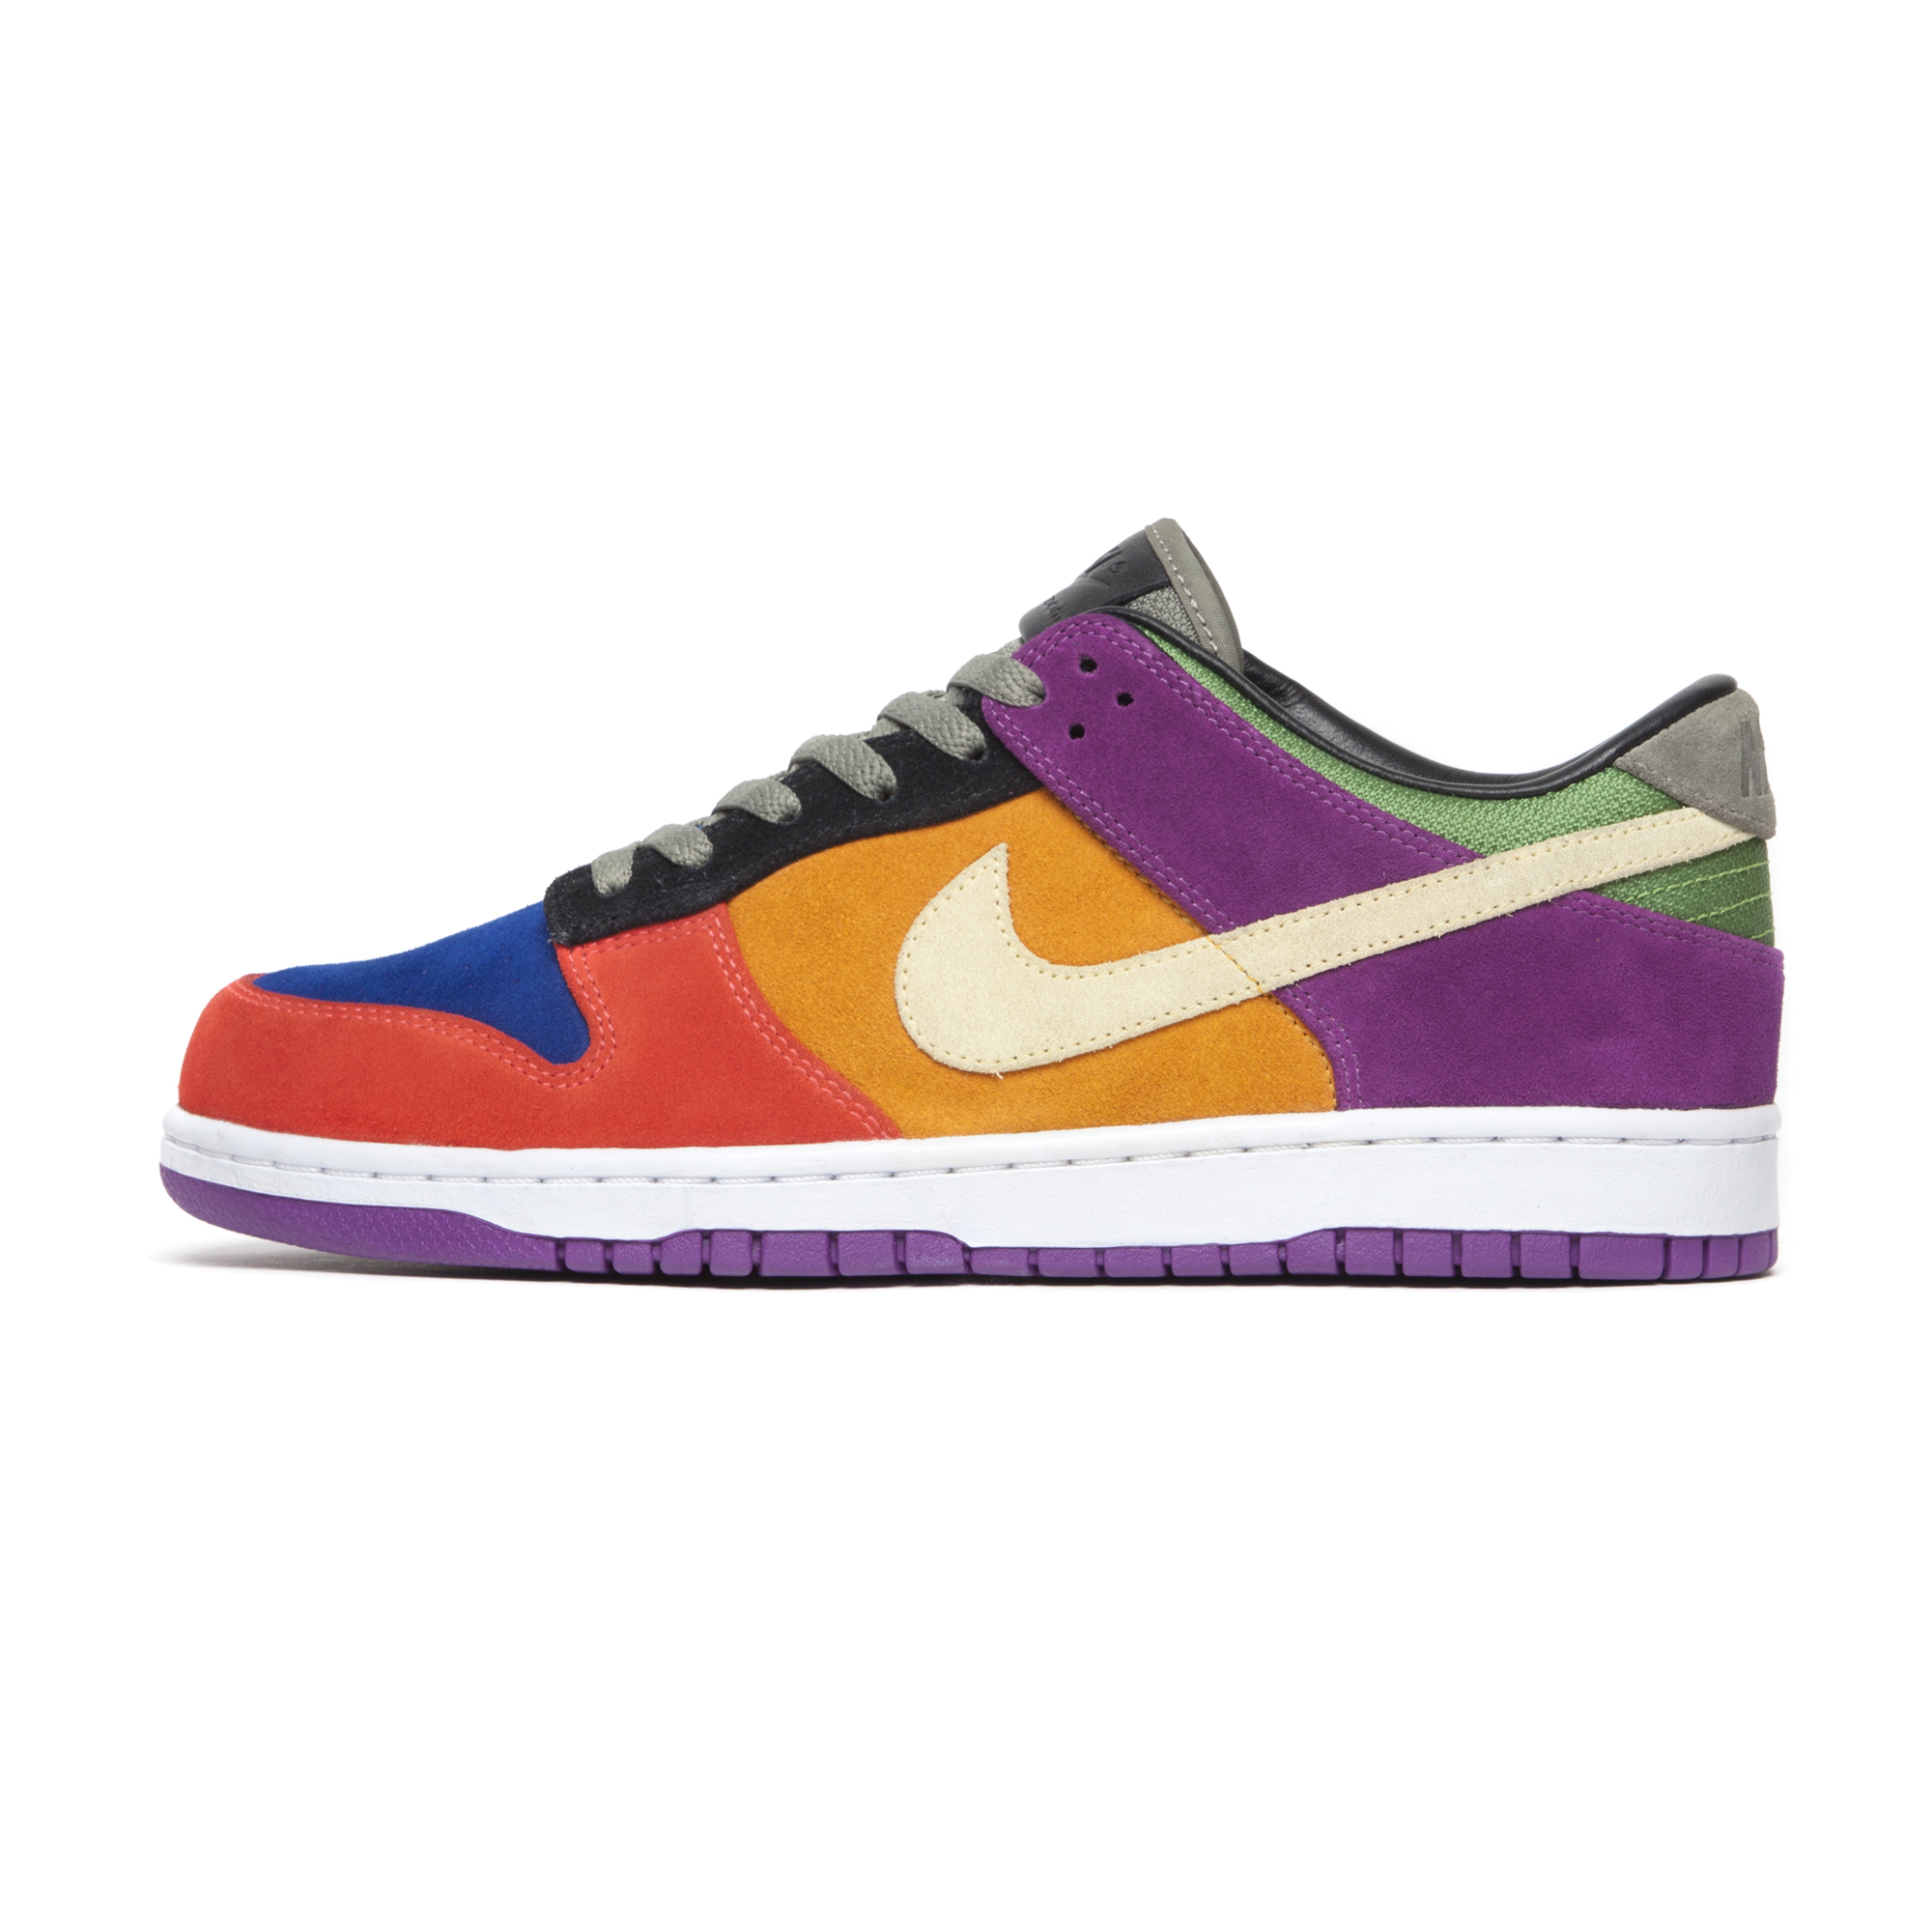 Nike Dunk Low 'Viotech' - size? blog